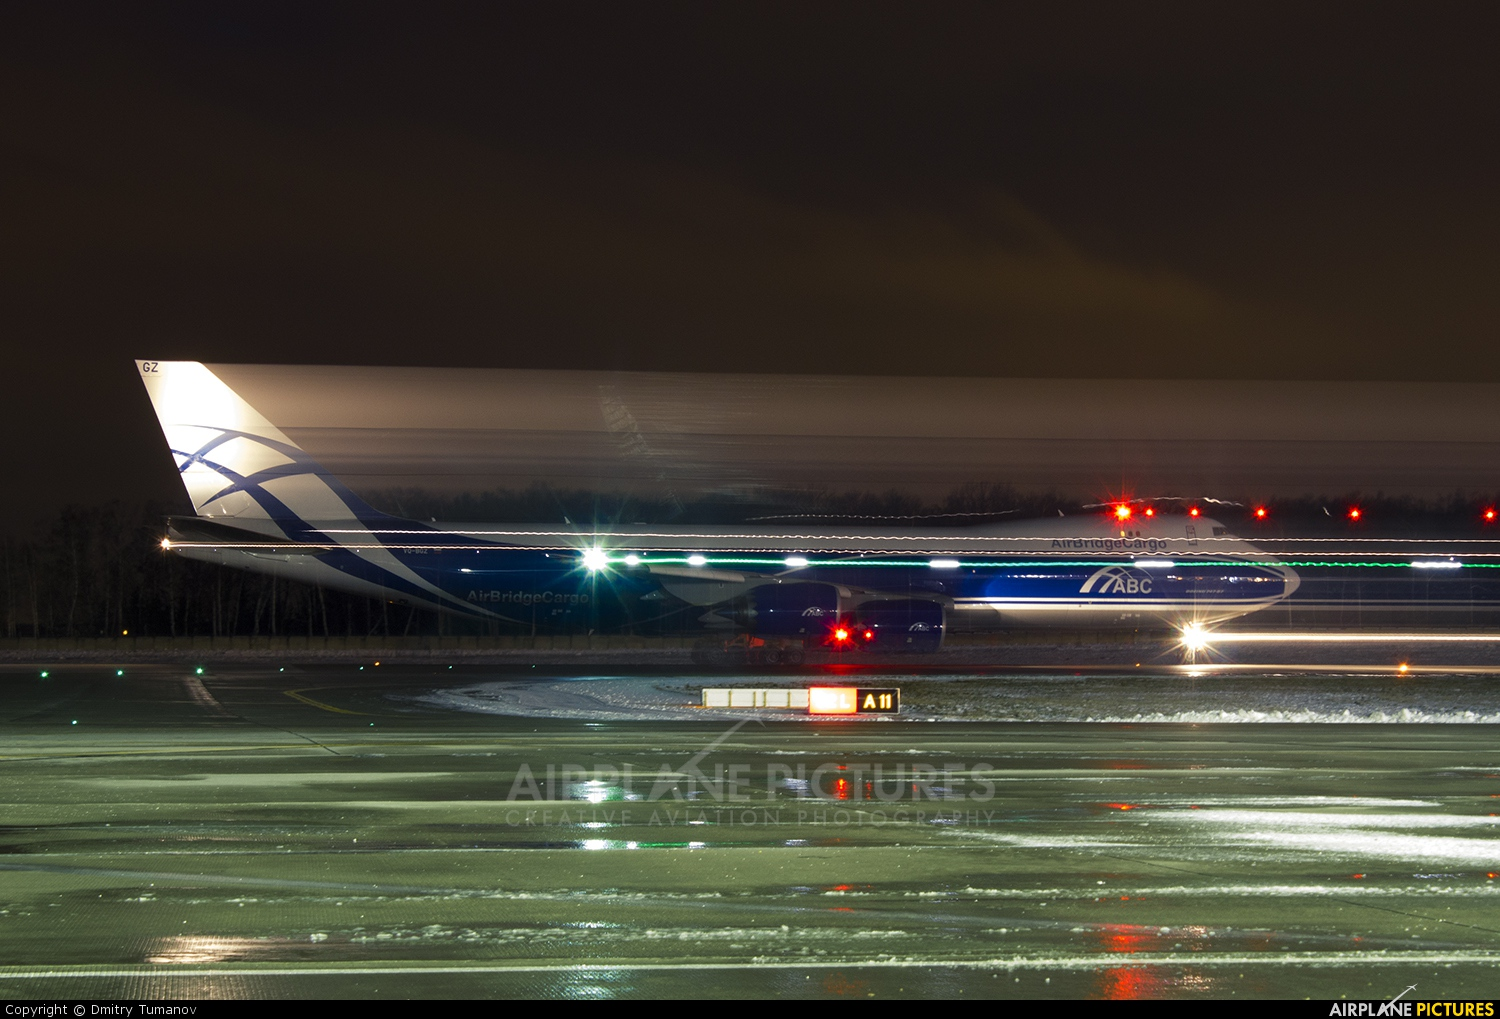 Air Bridge Cargo VQ-BGZ aircraft at Moscow - Domodedovo